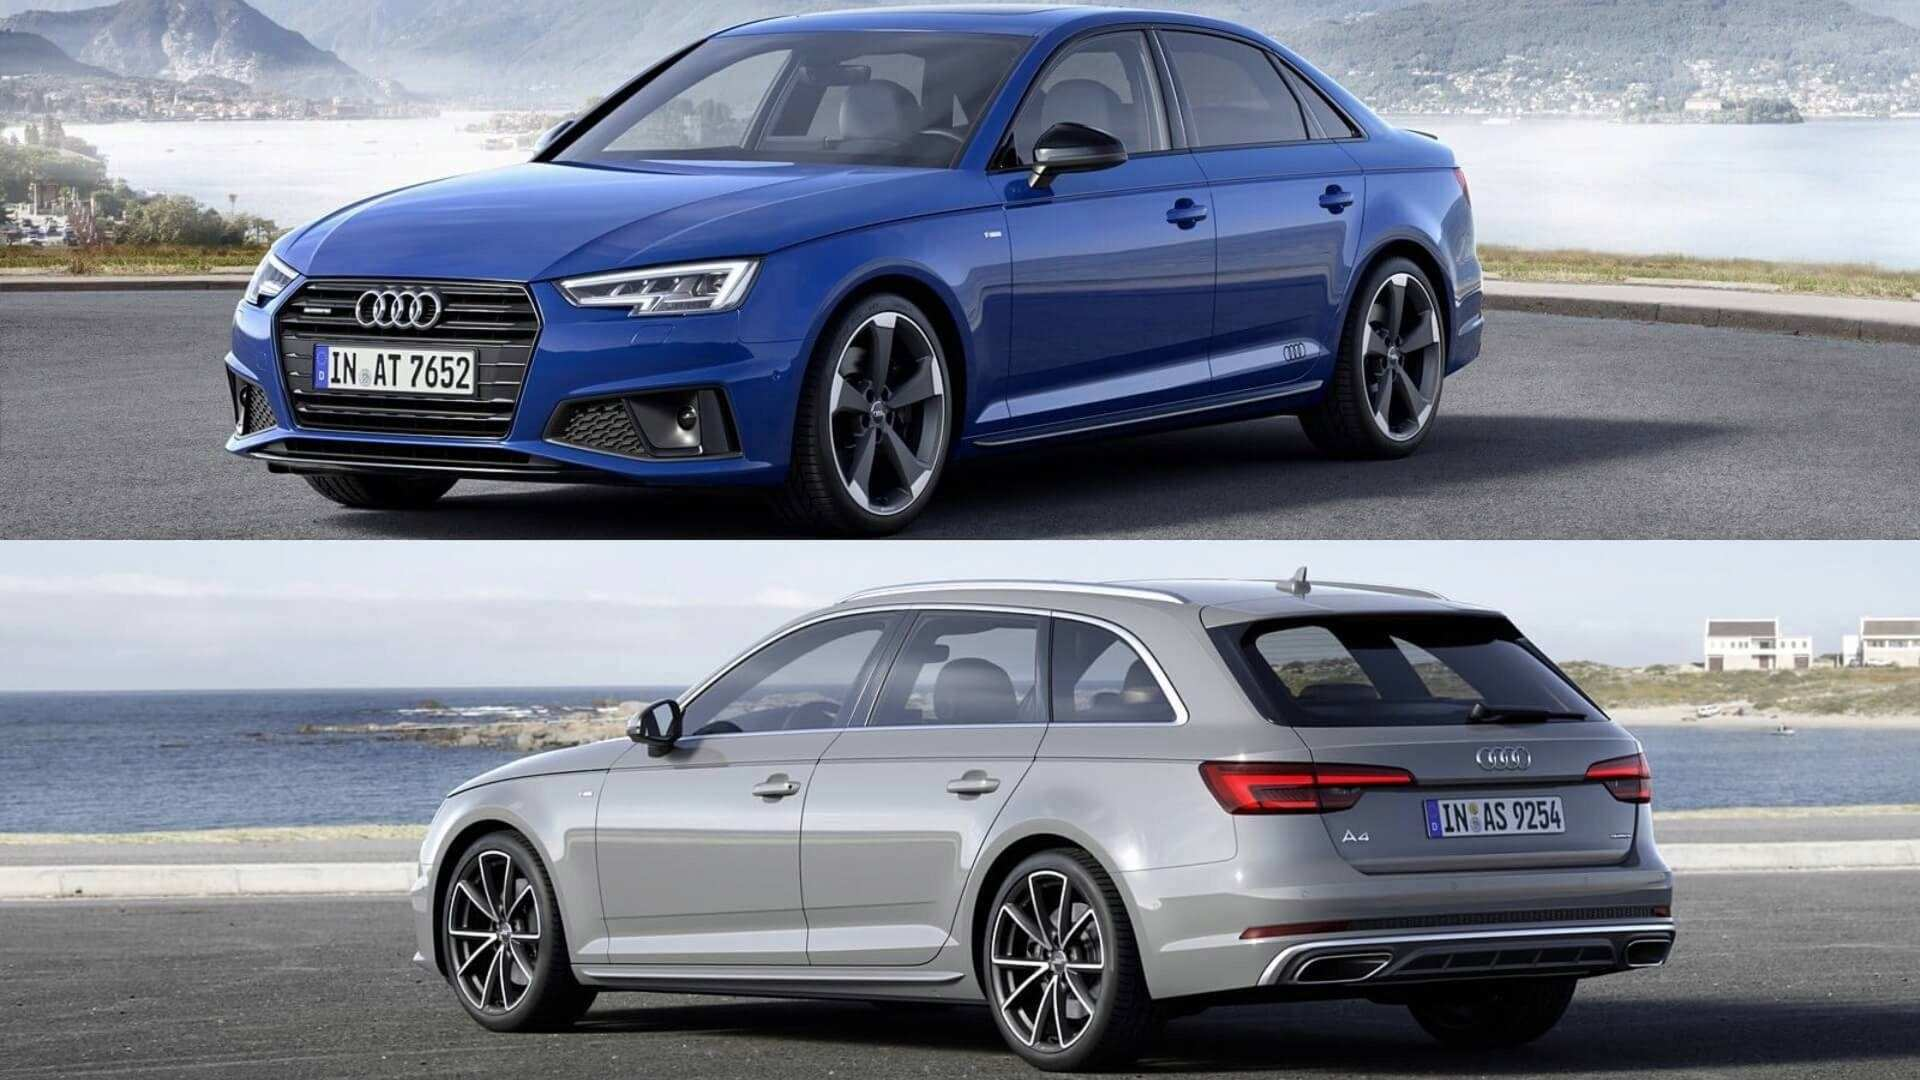 47 New 2019 Audi Rs4 Concept